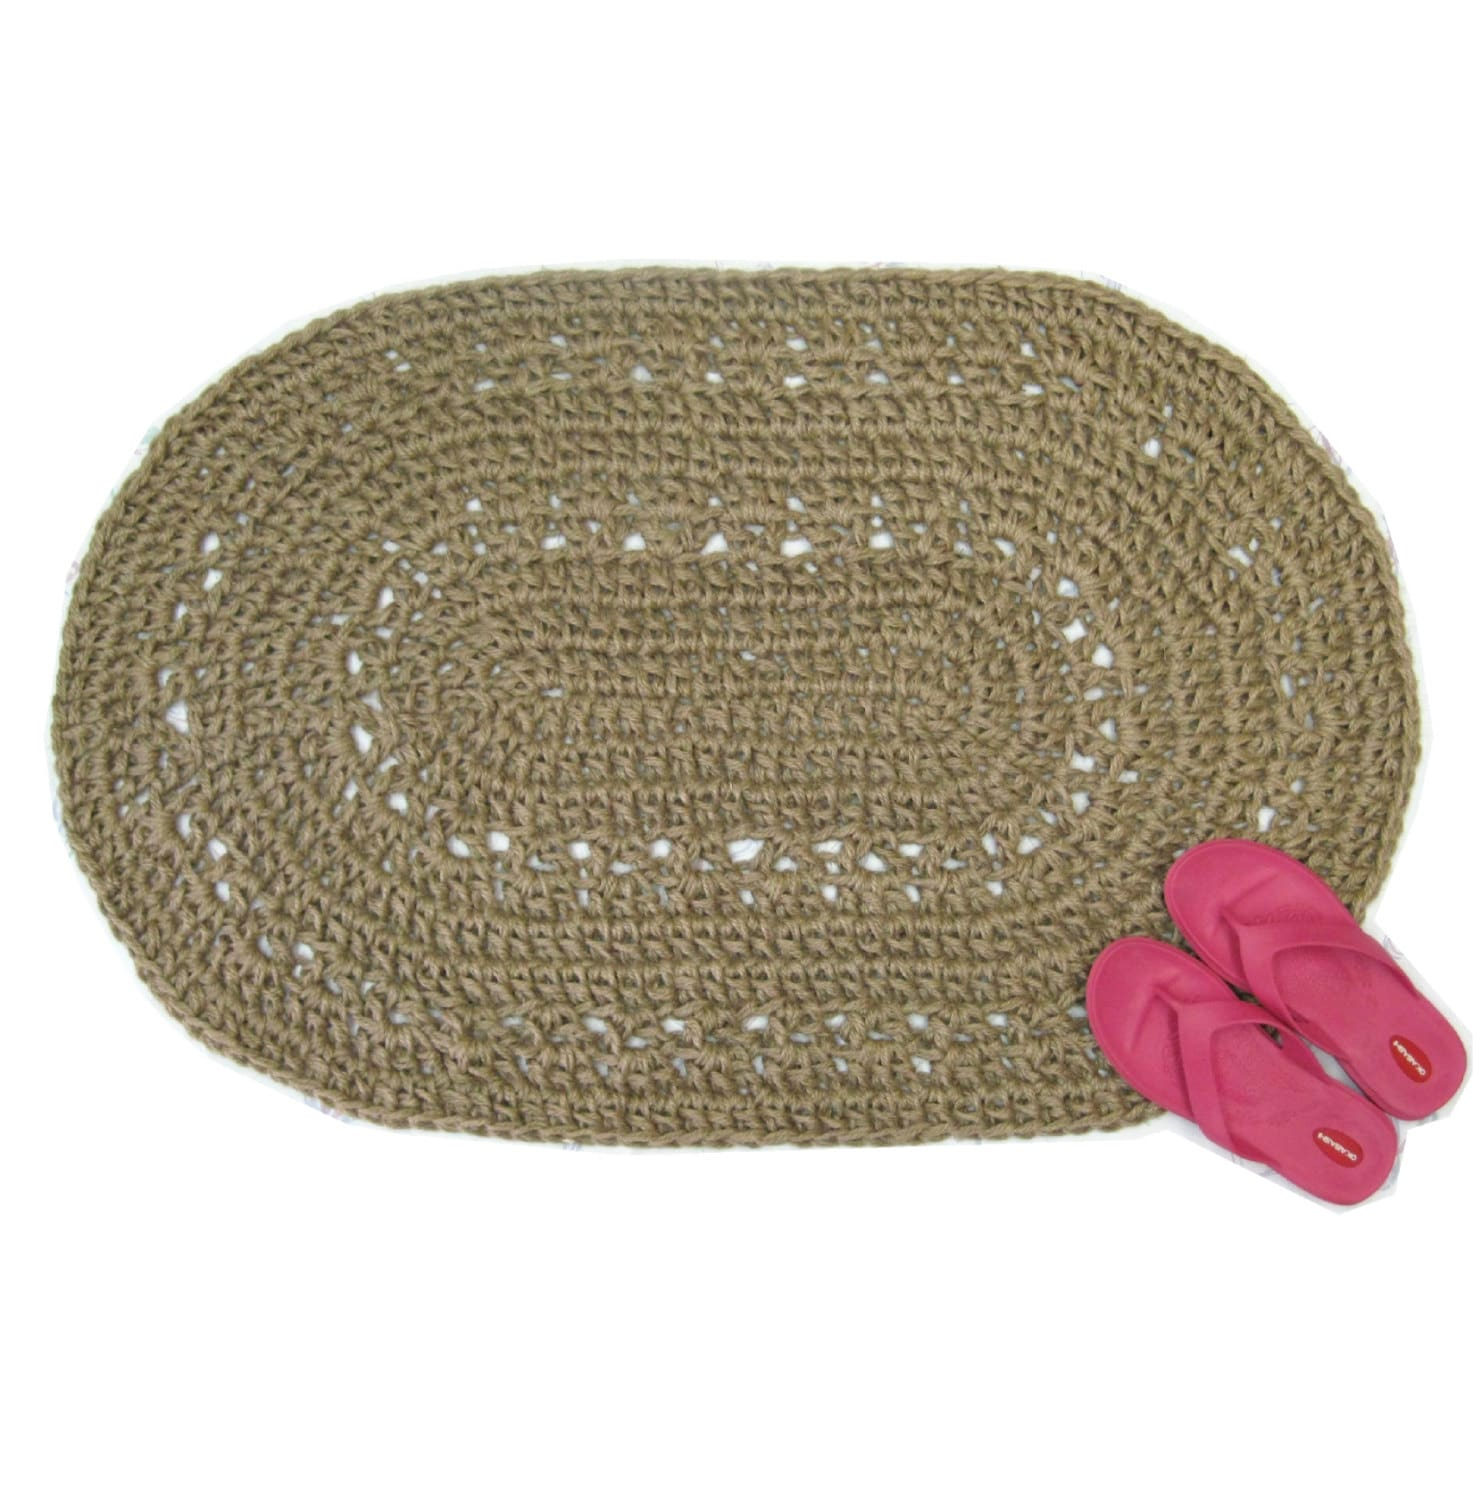 Oval Jute Area Rug Crocheted From Natural Fibers Kitchen Or